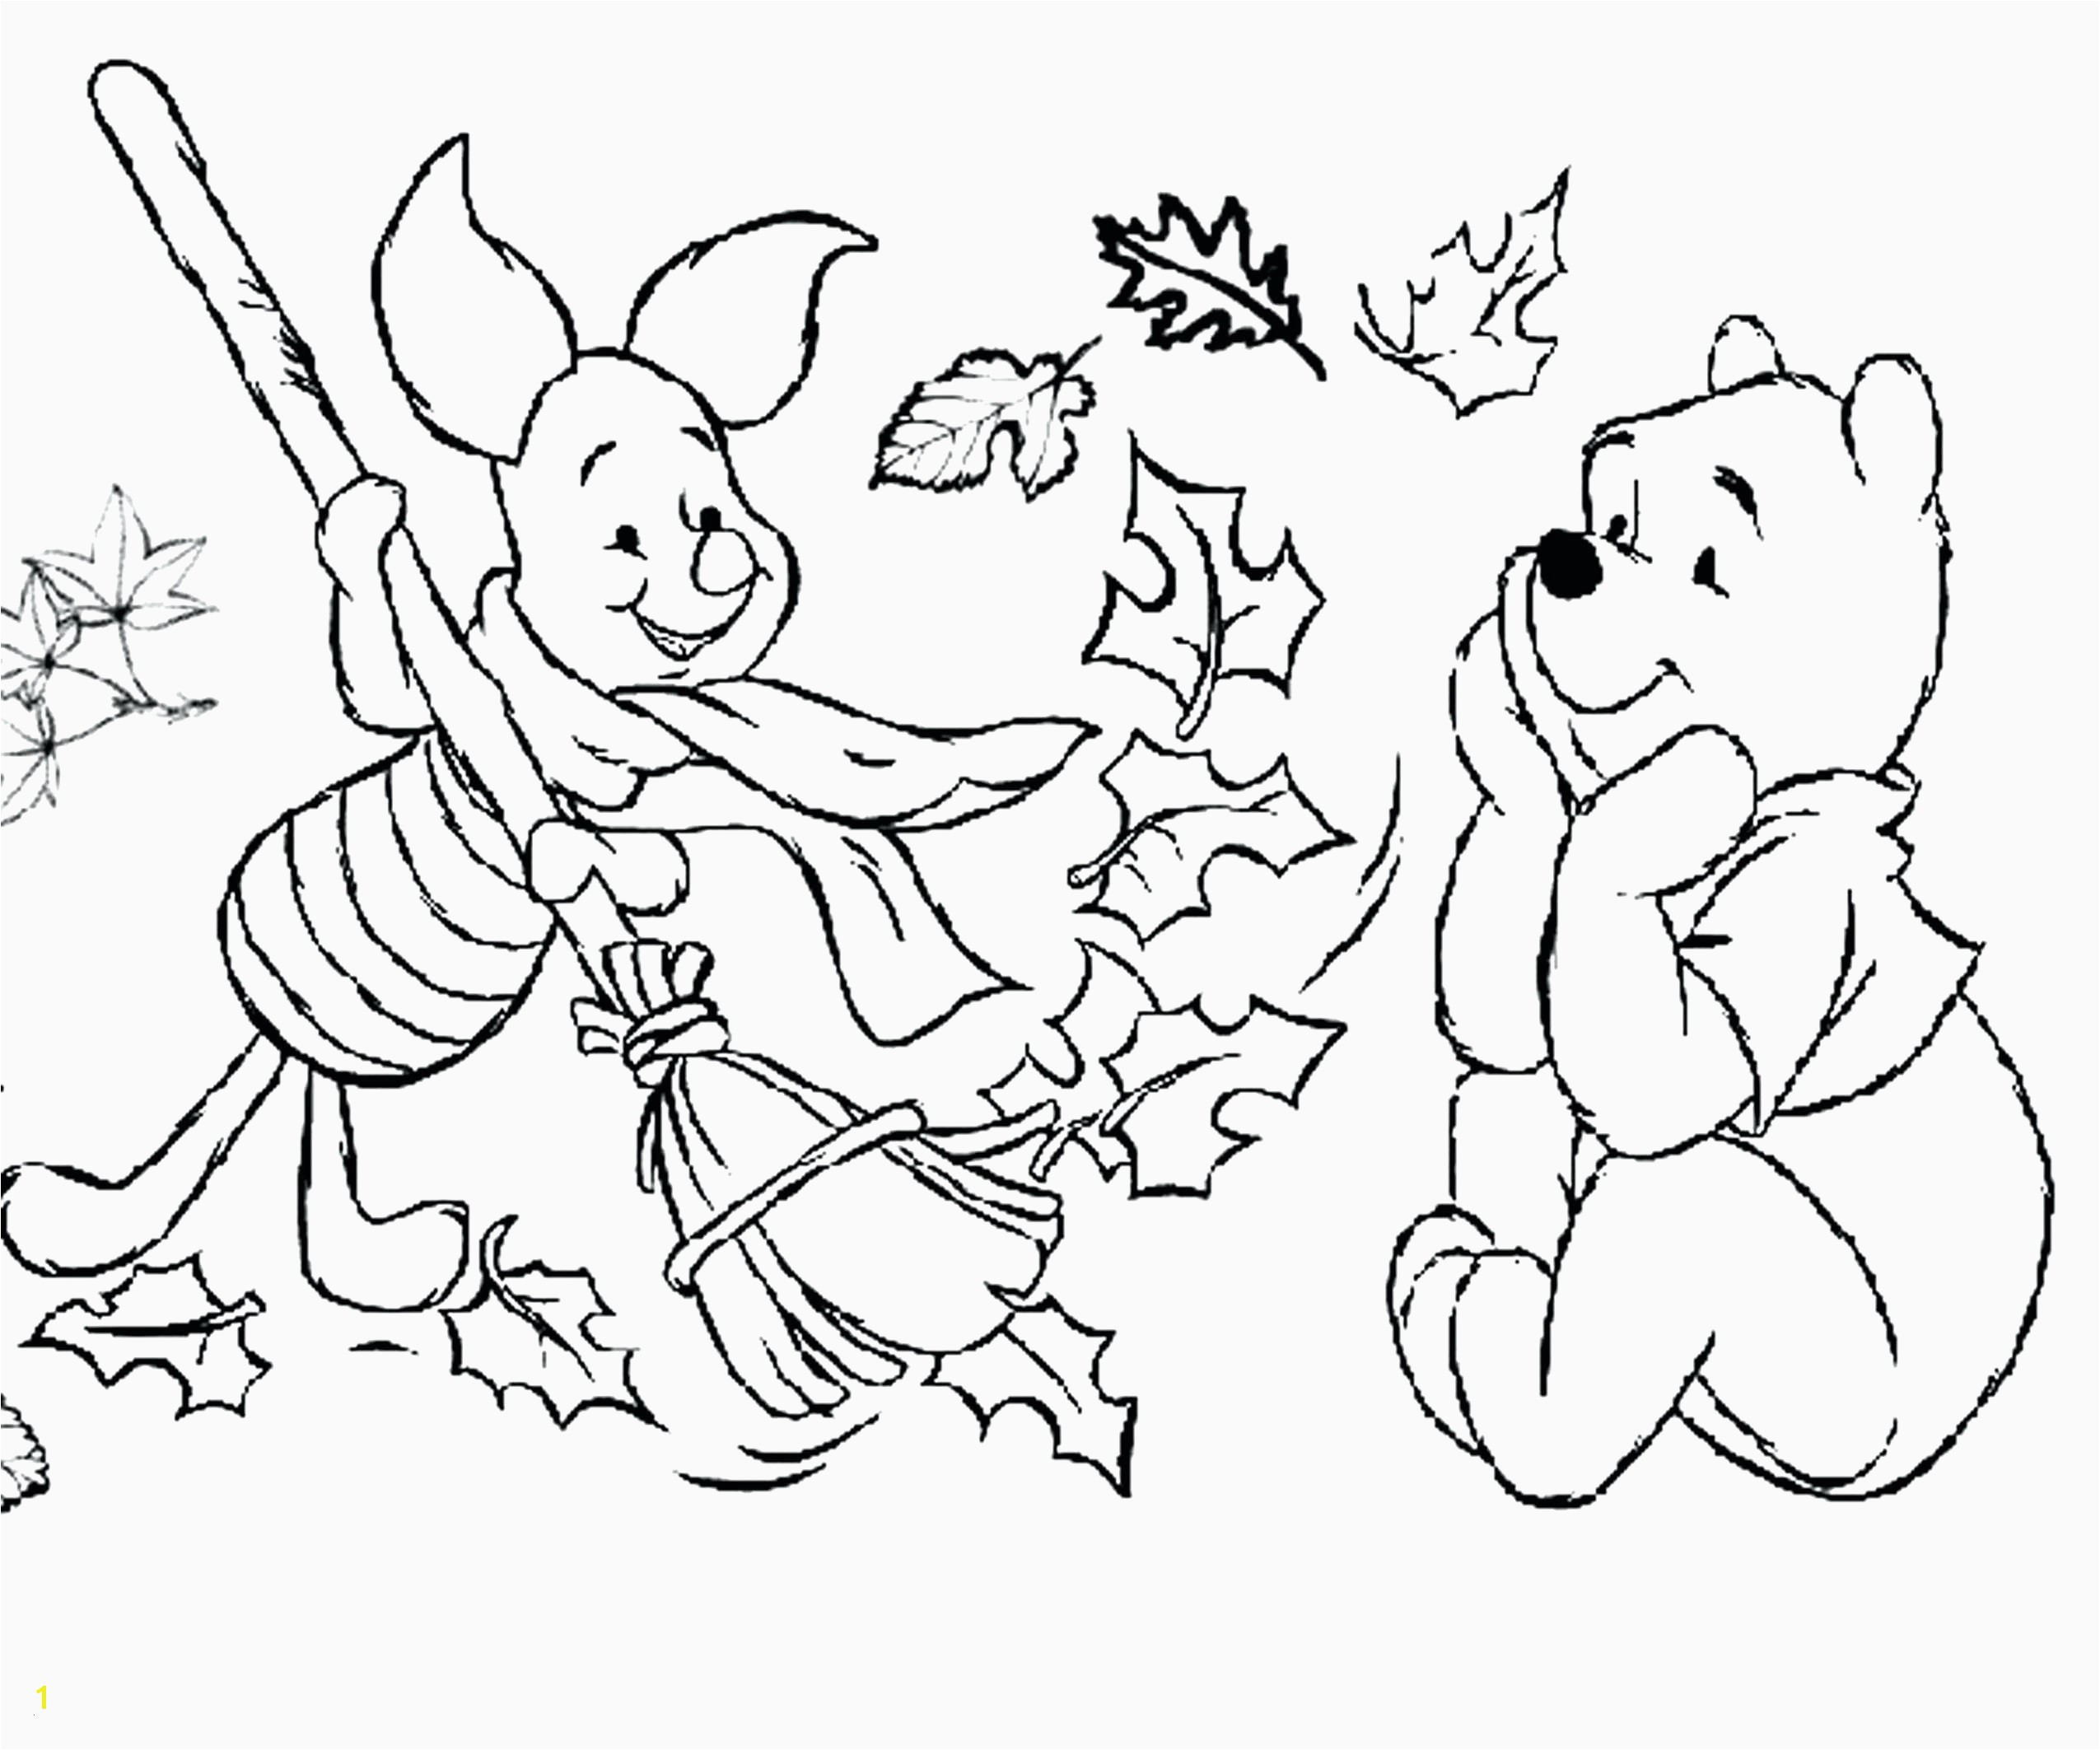 25 New Preschool Halloween Coloring Pages Cloud9vegashalloween Mask Coloring Pages